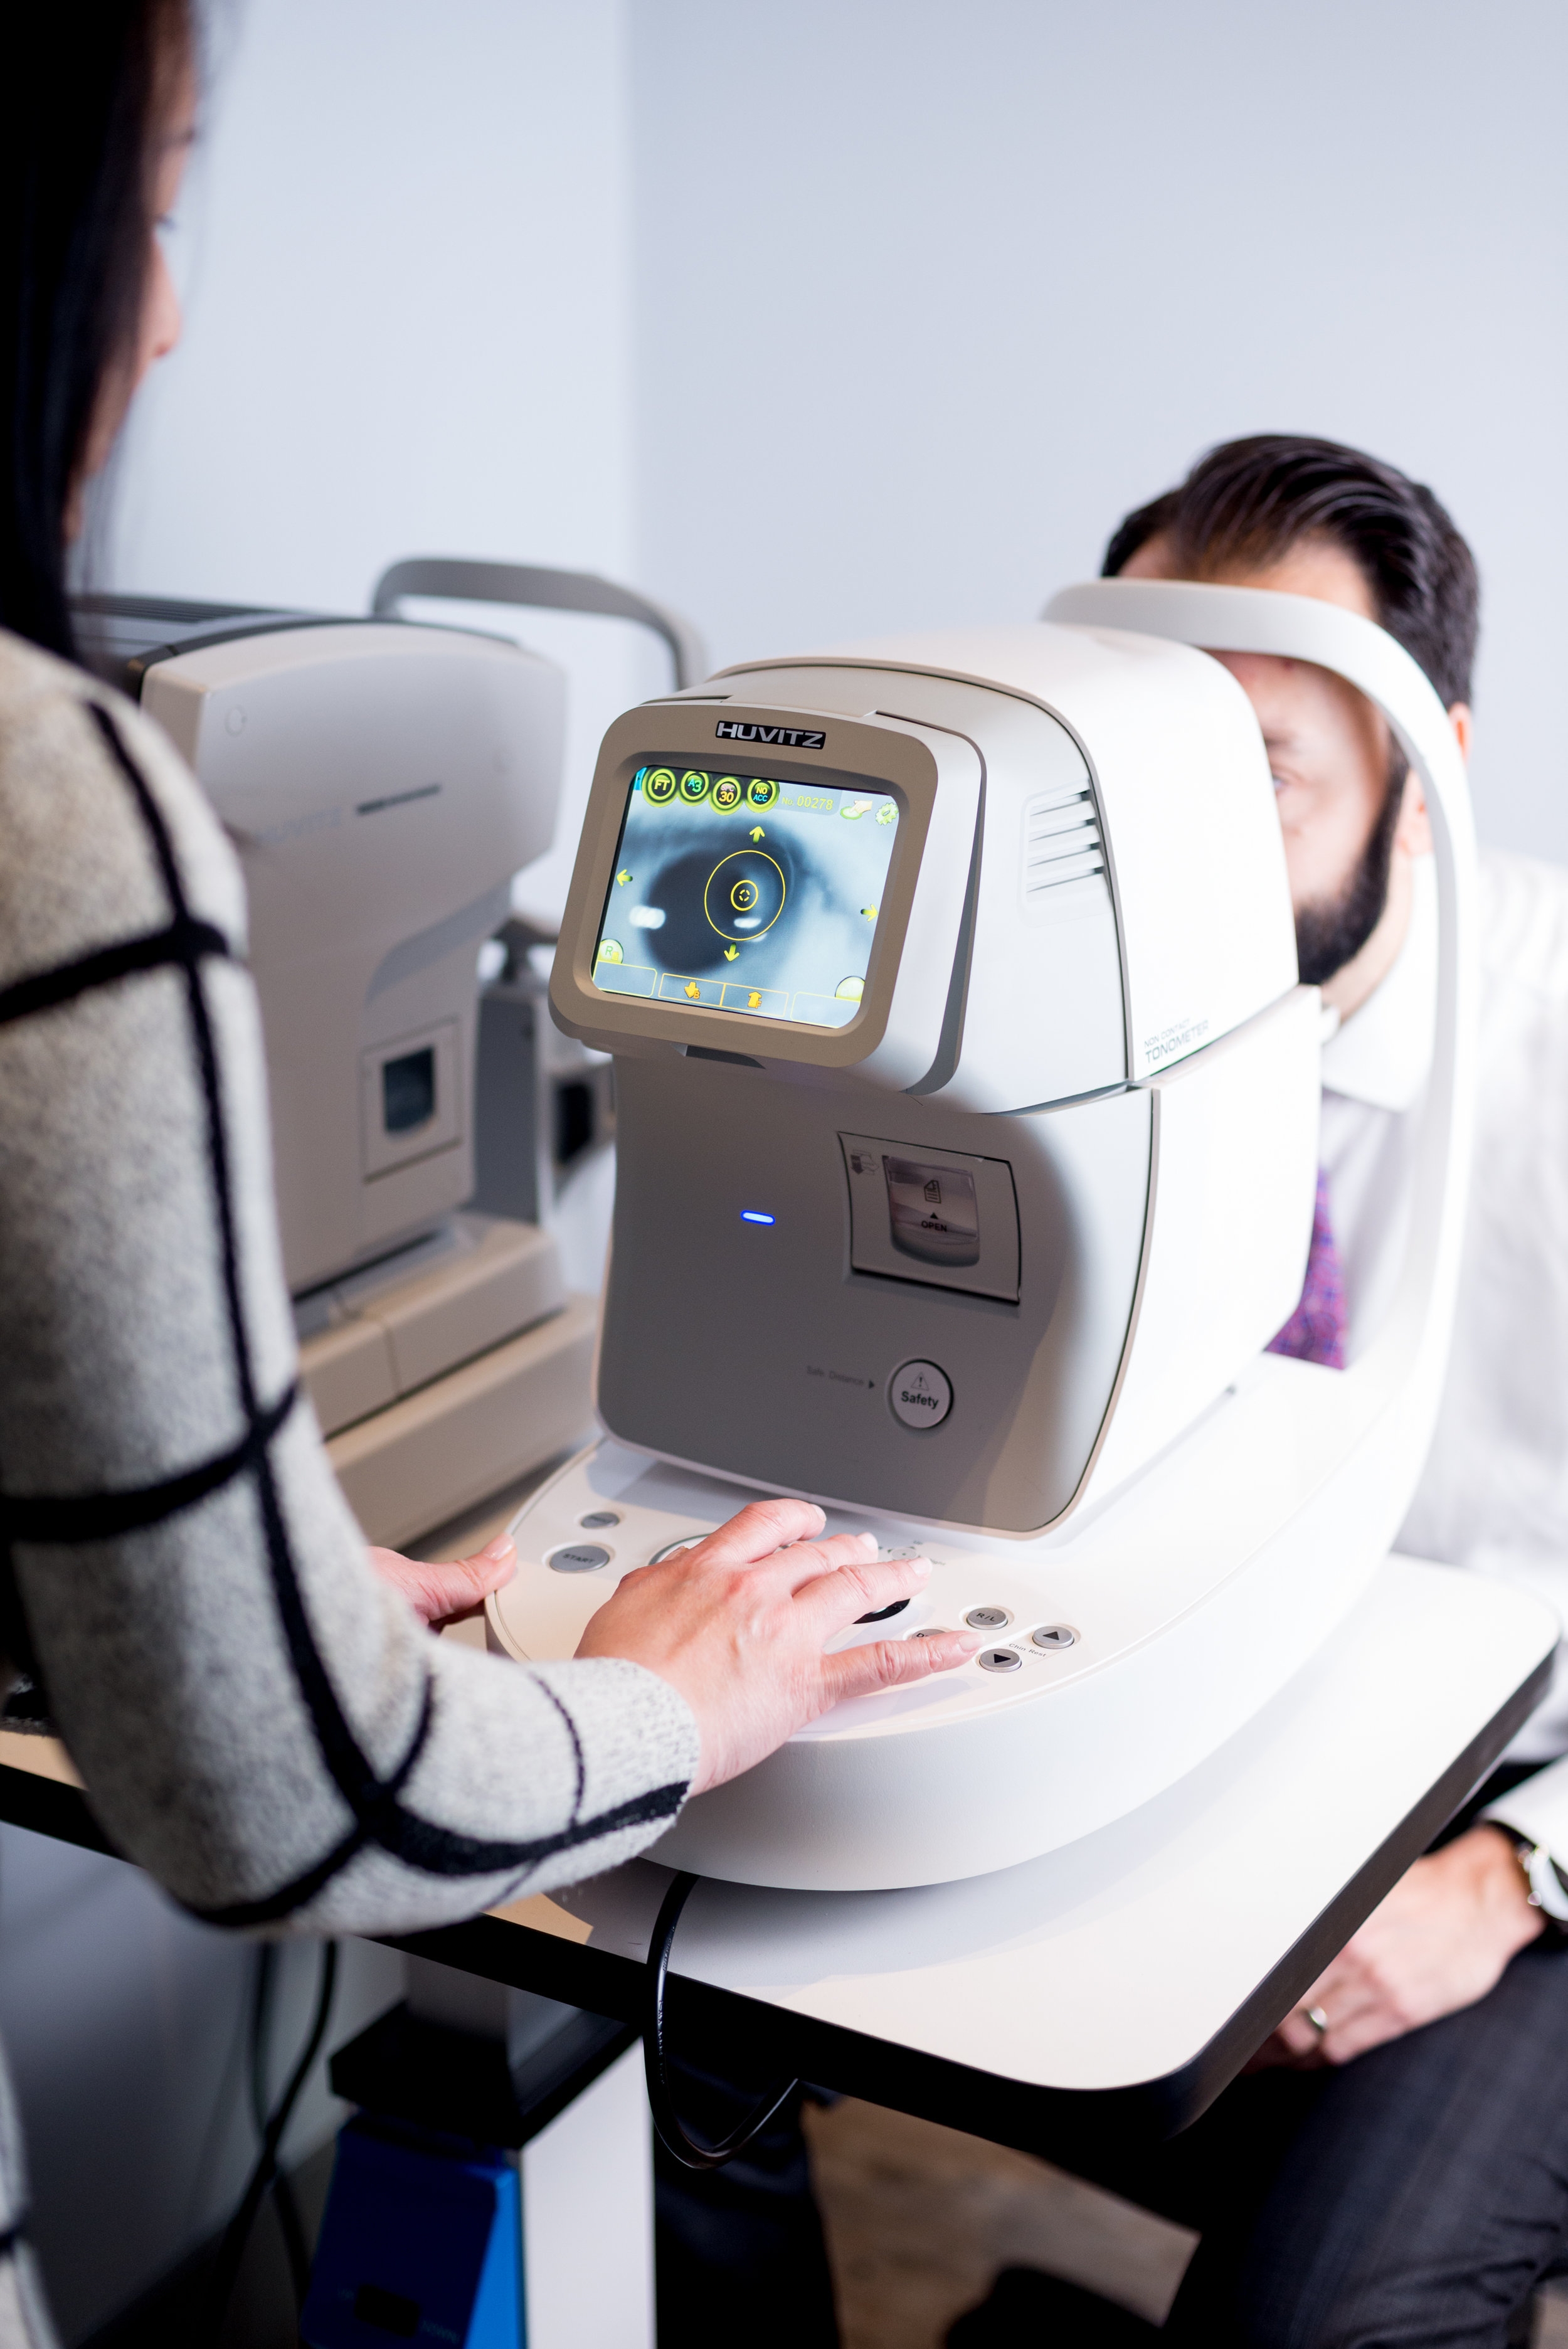 Accurately measuring the pressure inside the eyes is important when evaluating for eye diseases such as glaucoma.